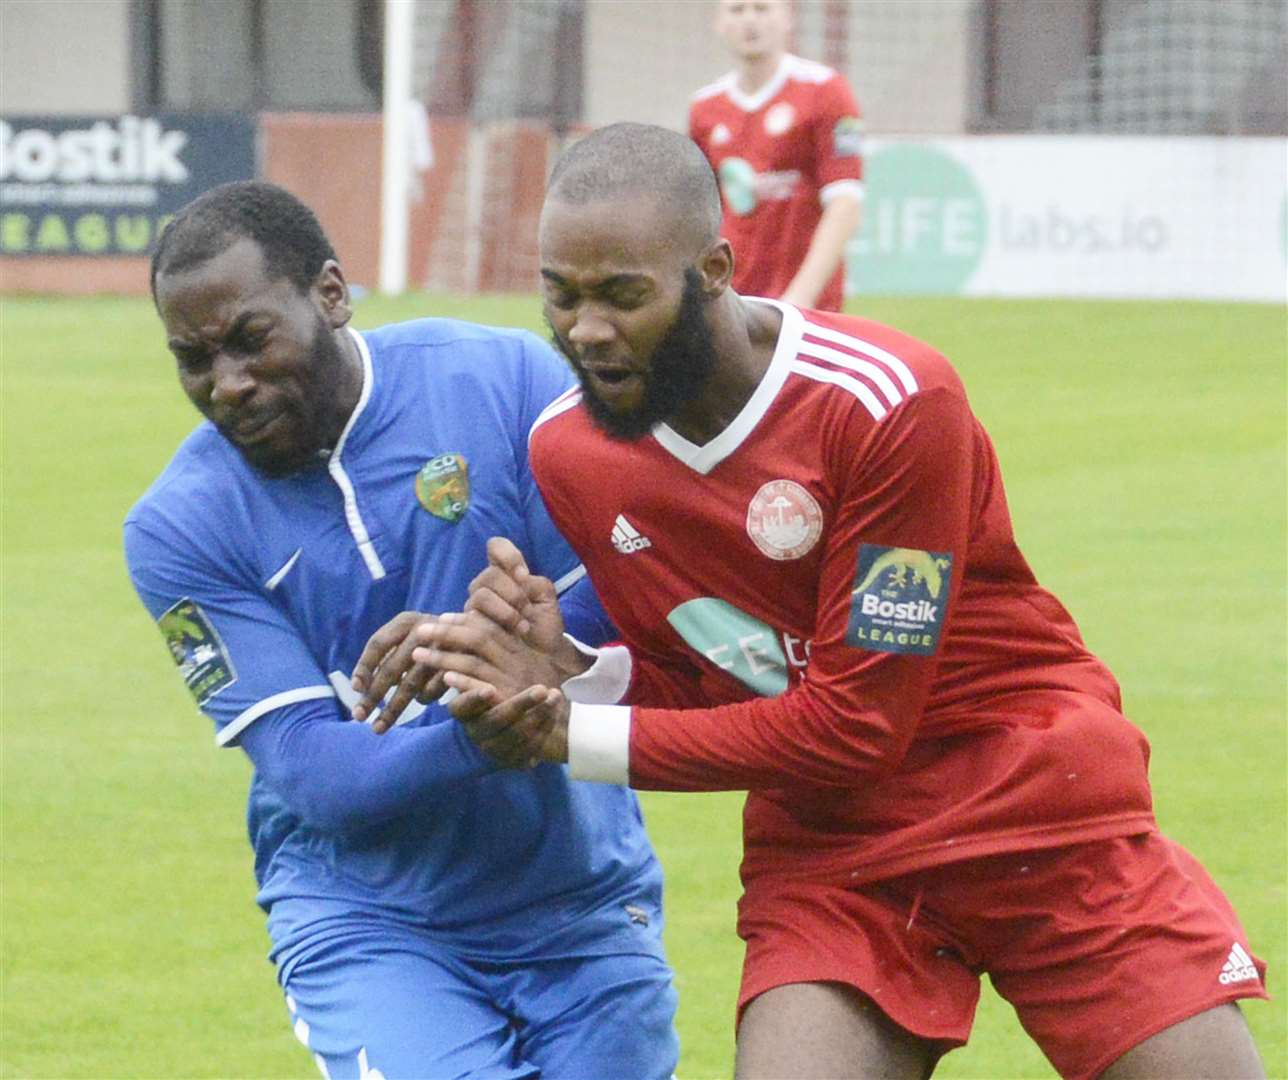 Zak Ansah, right, led Hythe to victory over VCD Picture: Paul Amos